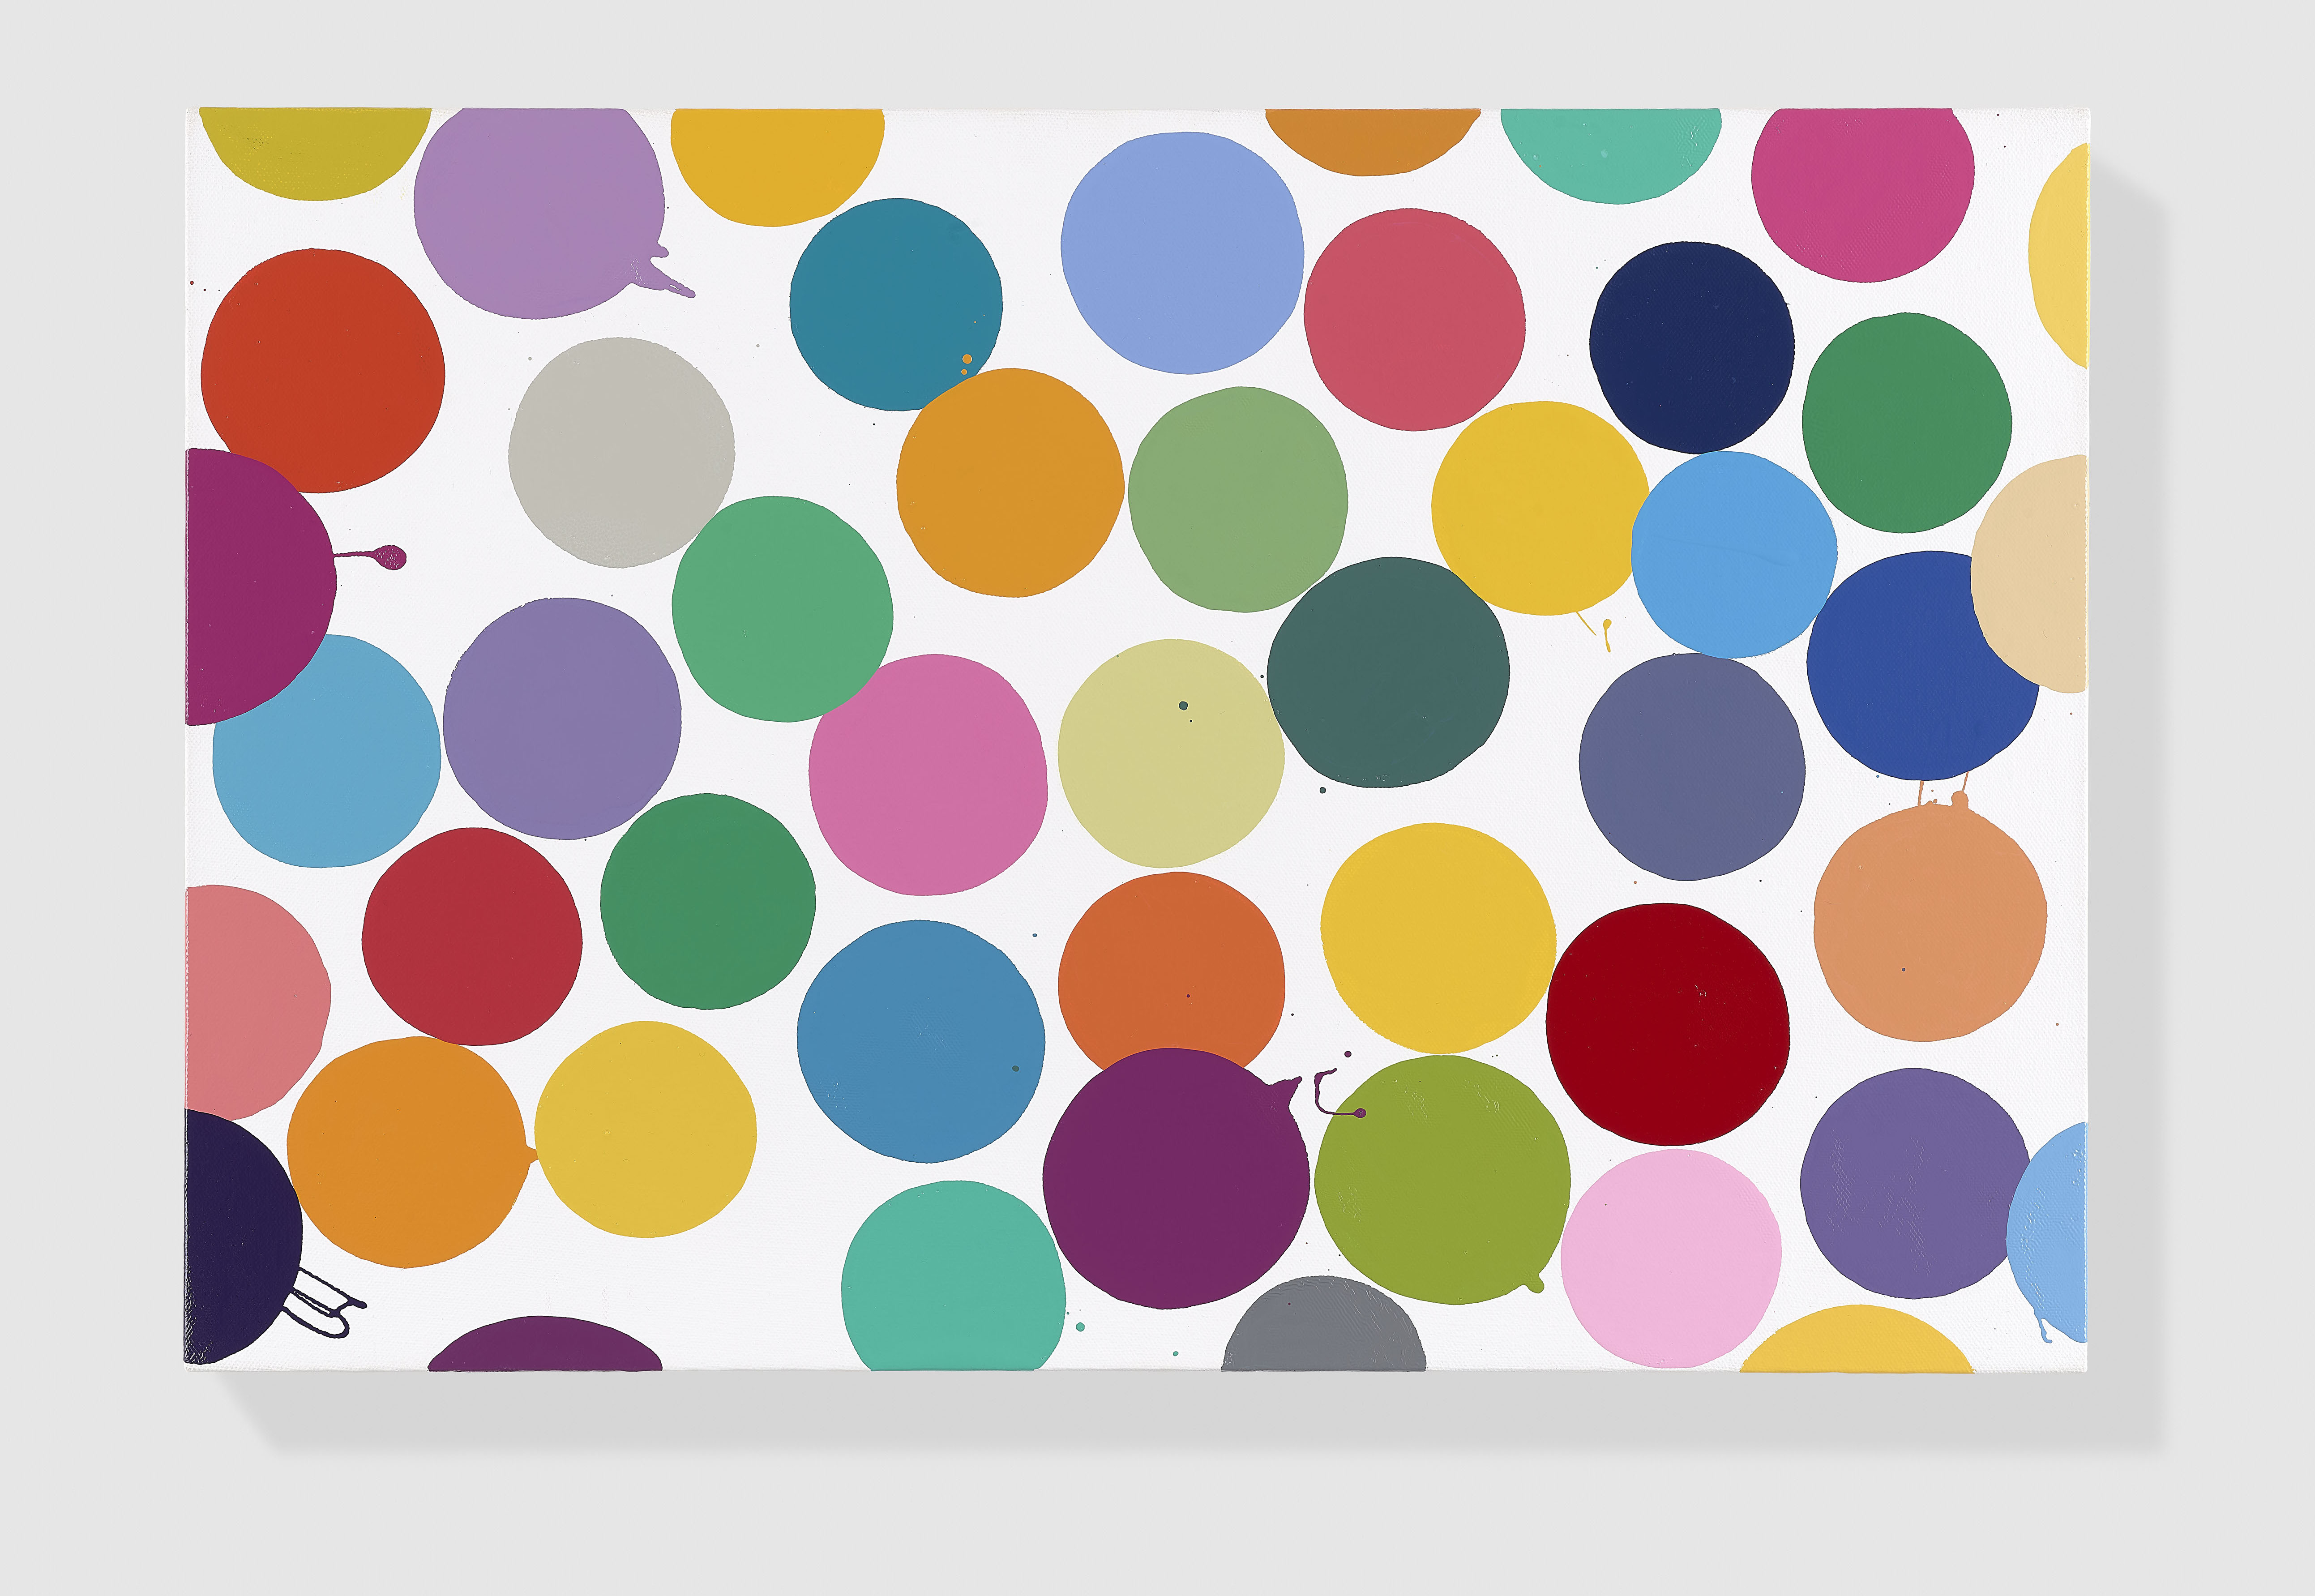 English Lilac (2016) Household gloss on canvas 406 x 610 mm © Damien Hirst and Science Ltd. All rights reserved, DACS 2017 Photographed by Prudence Cuming Associates Ltd